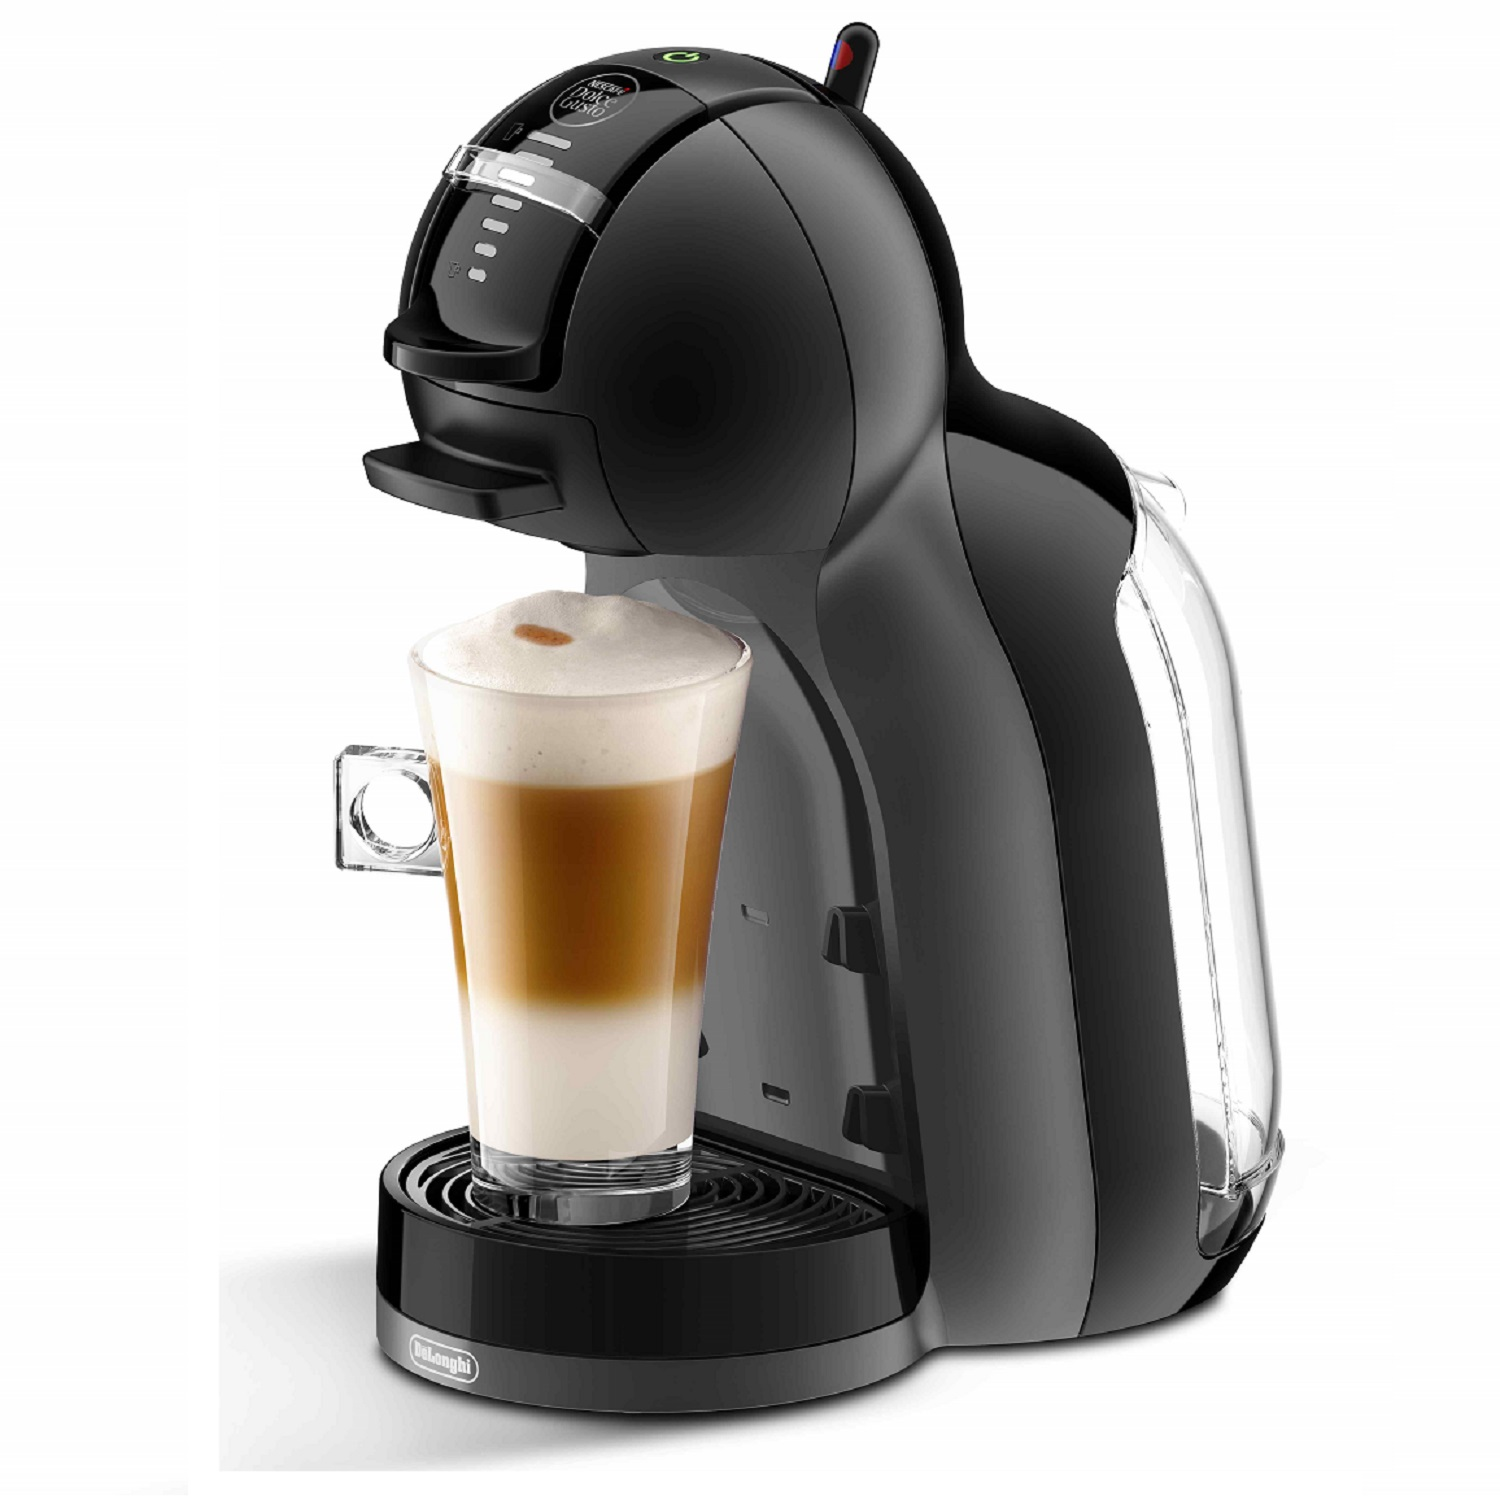 Cafetera Dolce Gusto mini EDG305 GR - 2